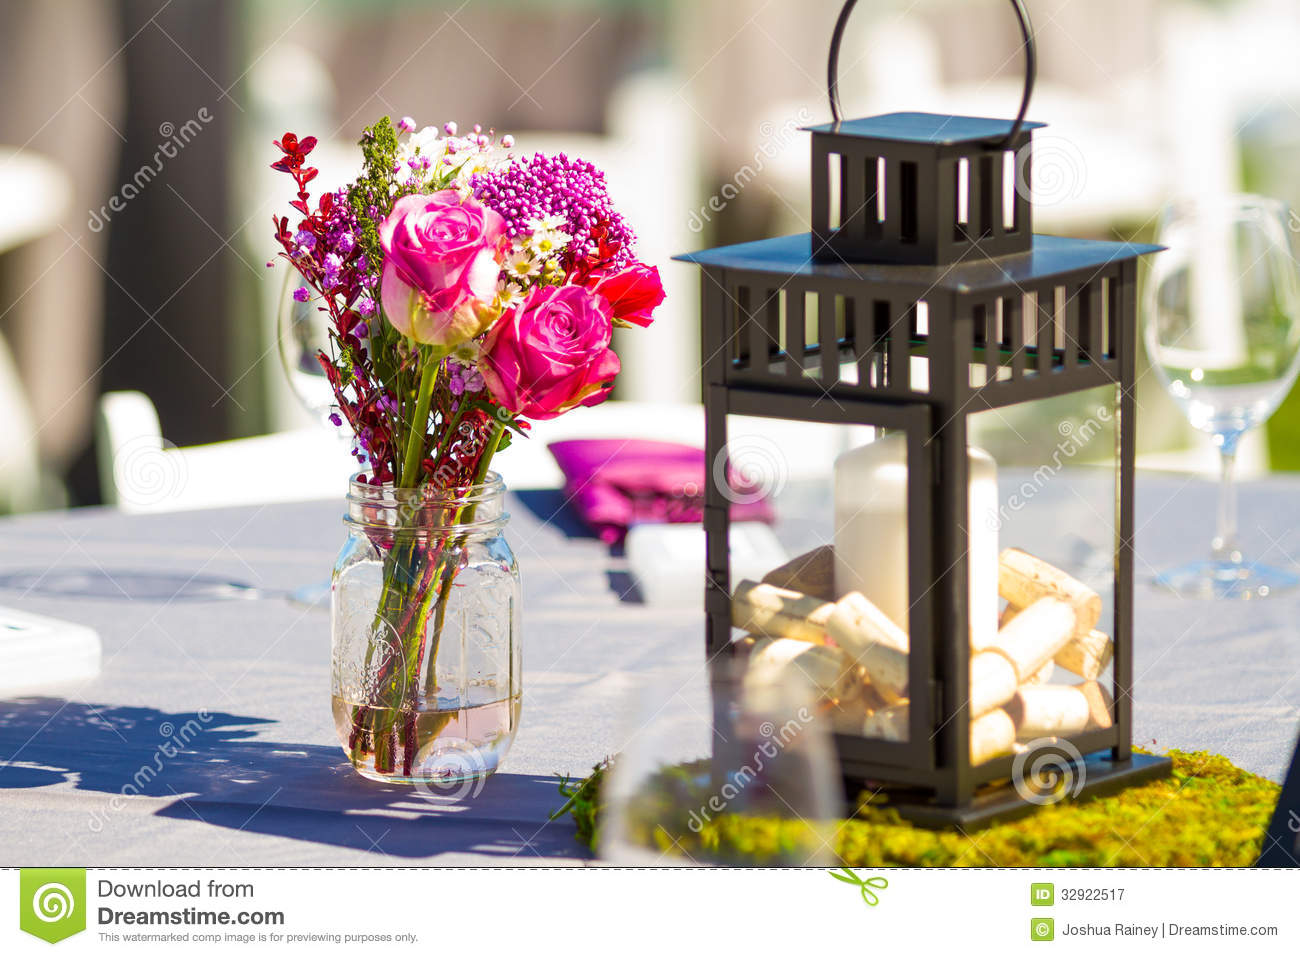 vineyard wedding decoration ideas wedding reception table details stock image image 32922517 8271